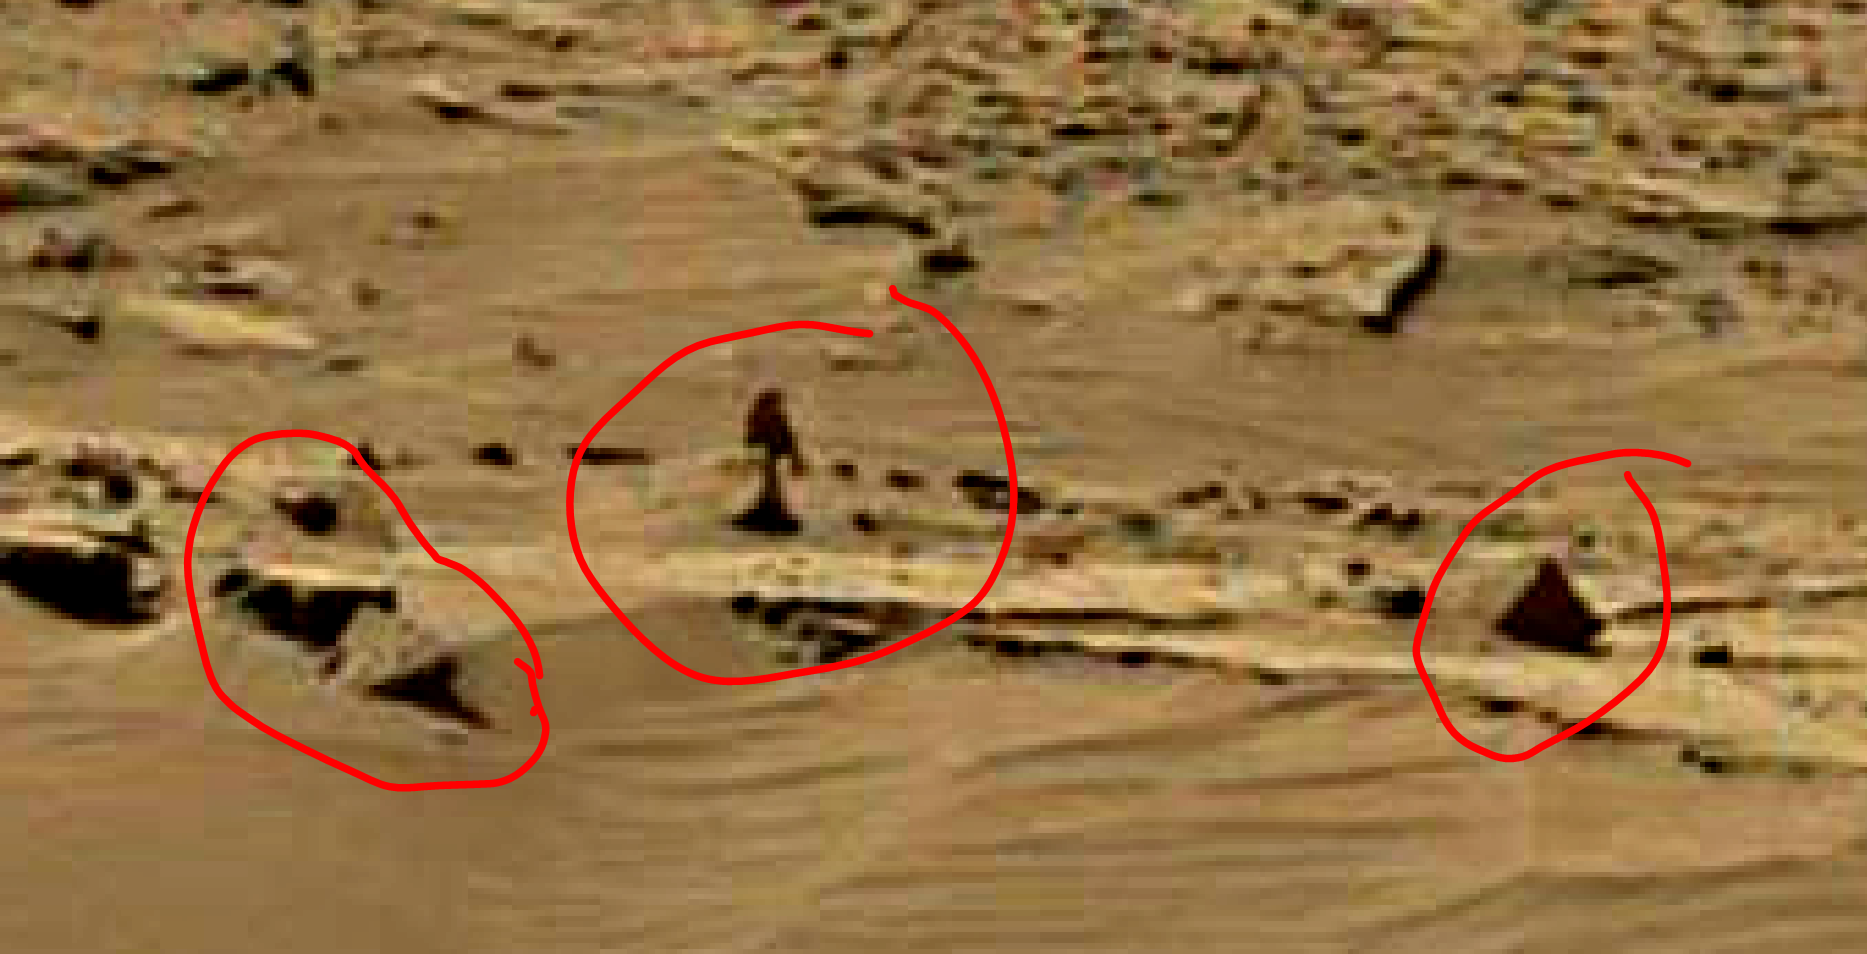 mars sol 1344 anomaly-artifacts 4a was life on mars